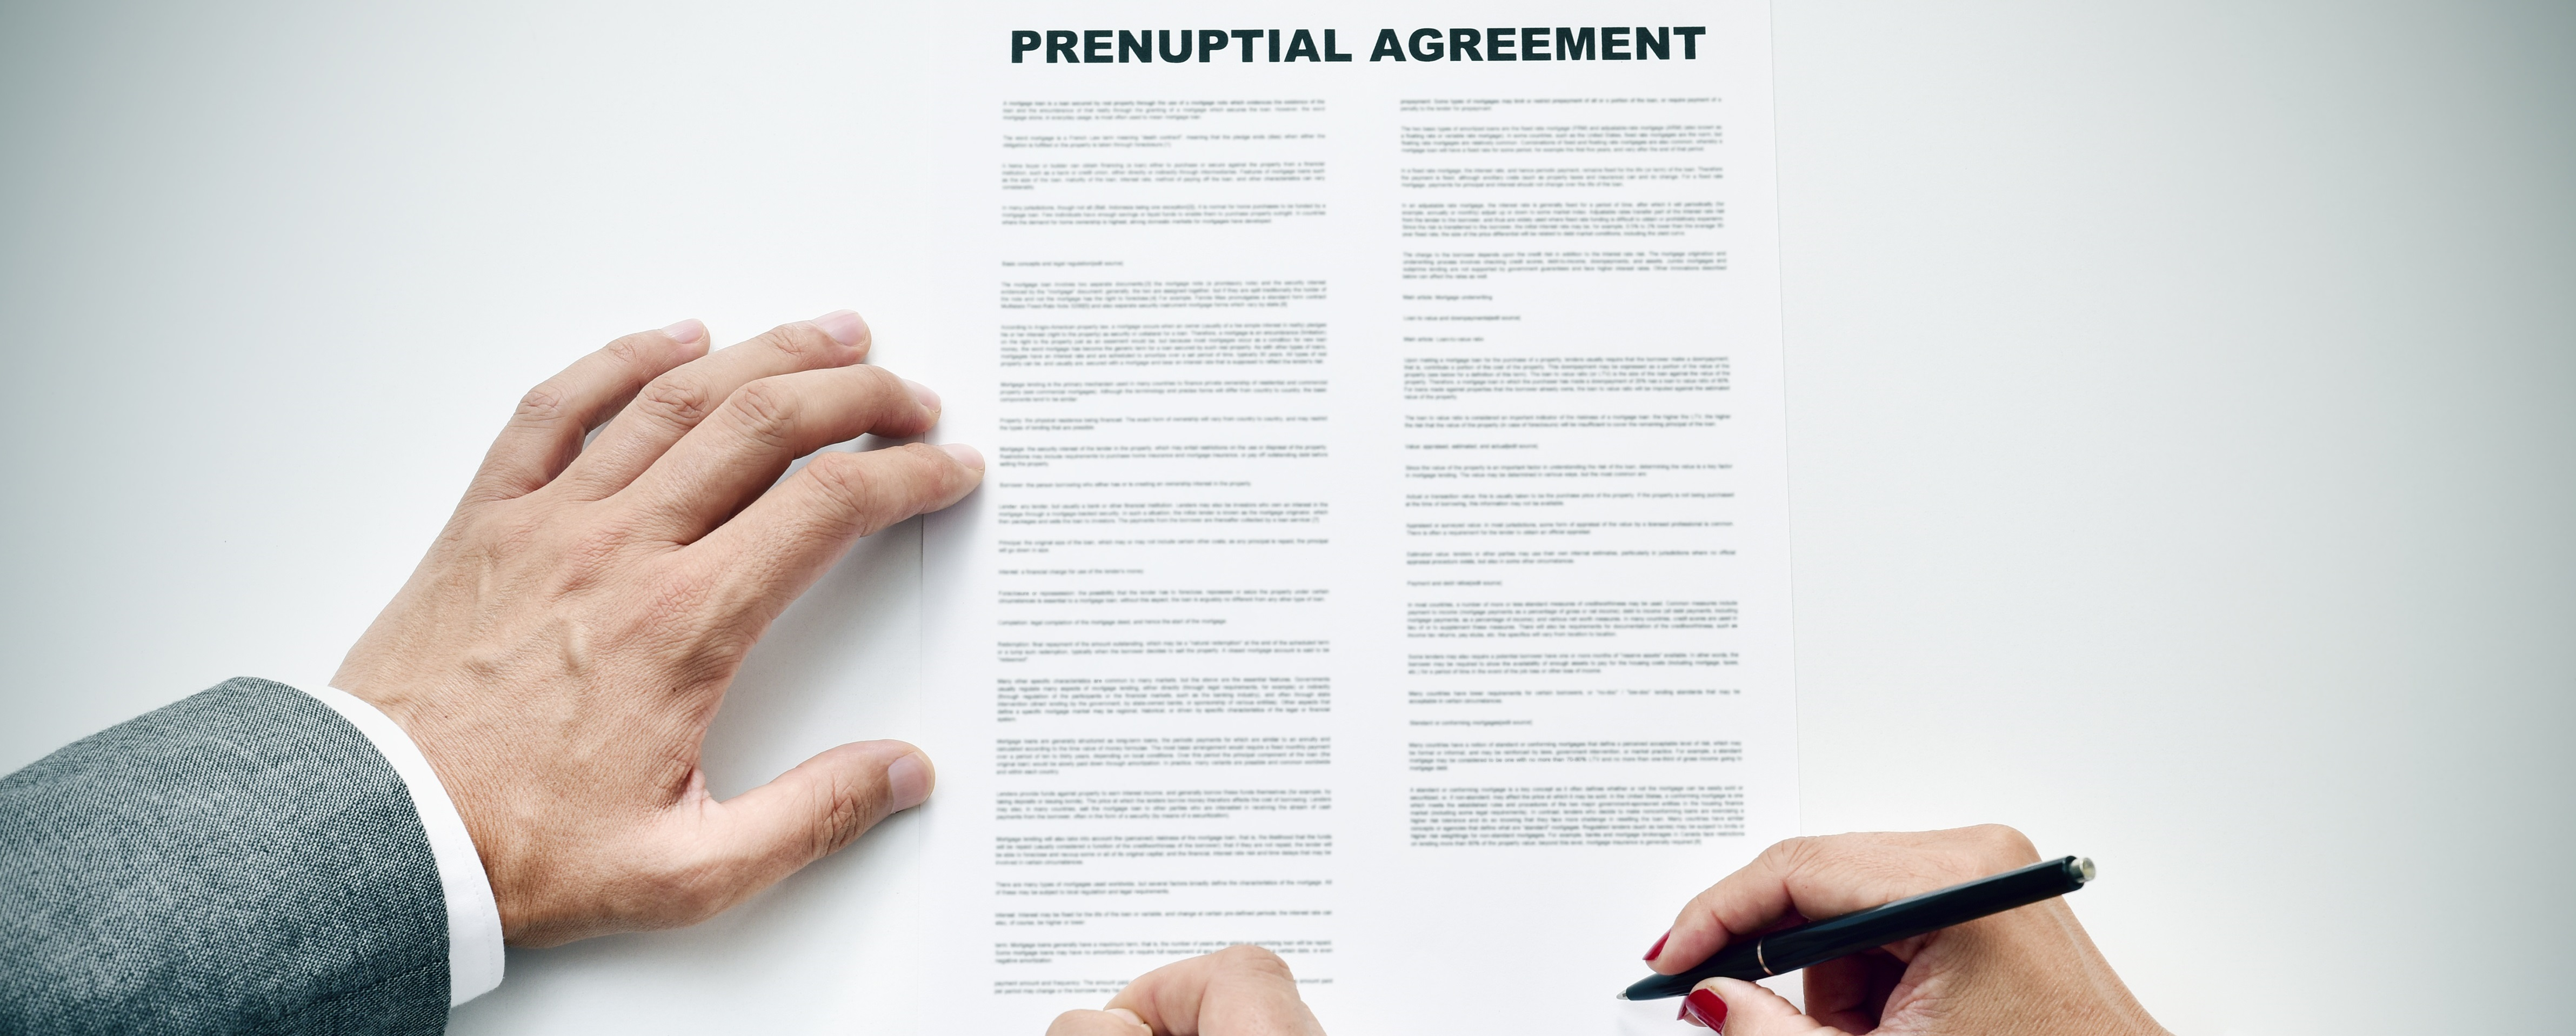 Marriage Contracts And Prenuptial Agreements In French Law